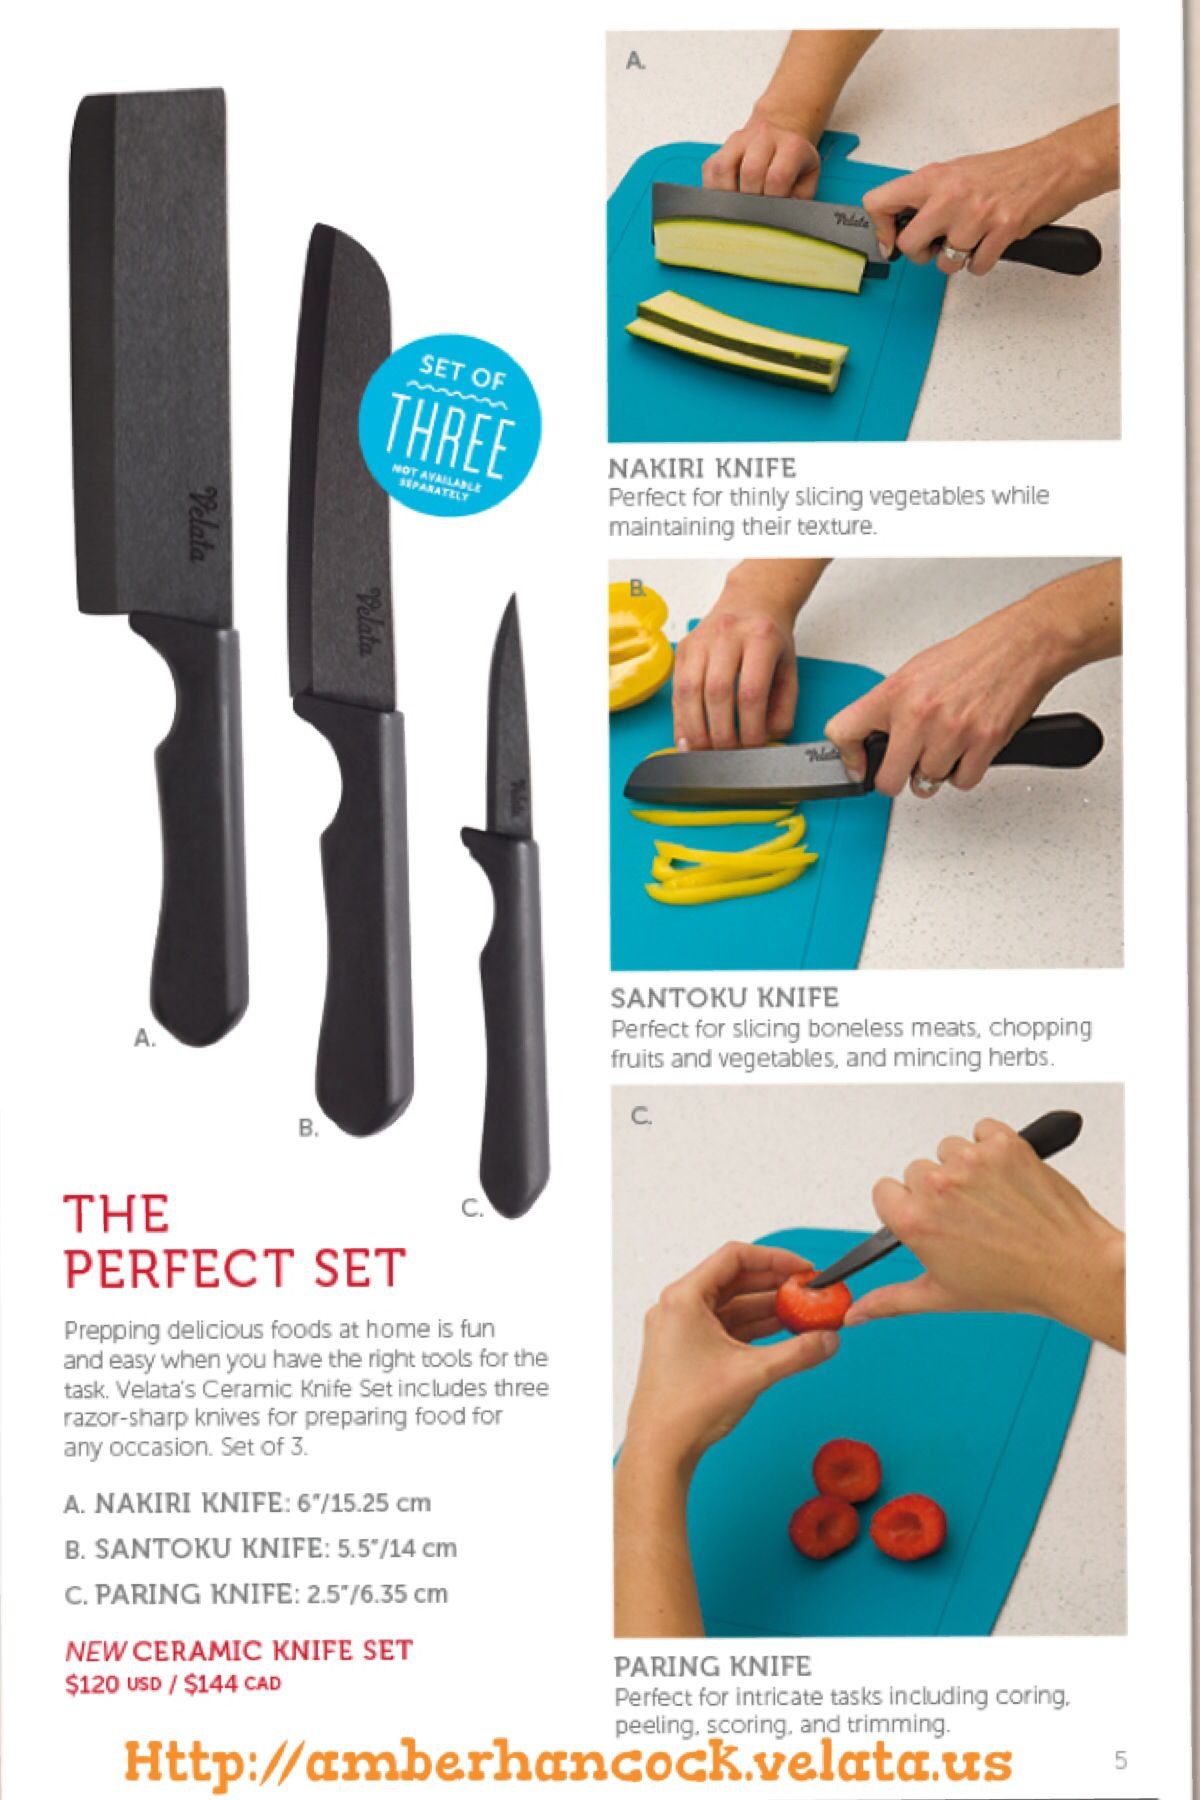 Velata Summer Catalog 2014  Ceramic knives for cooking an awesome meal!  Bringing families together around the kitchen table making meals together.